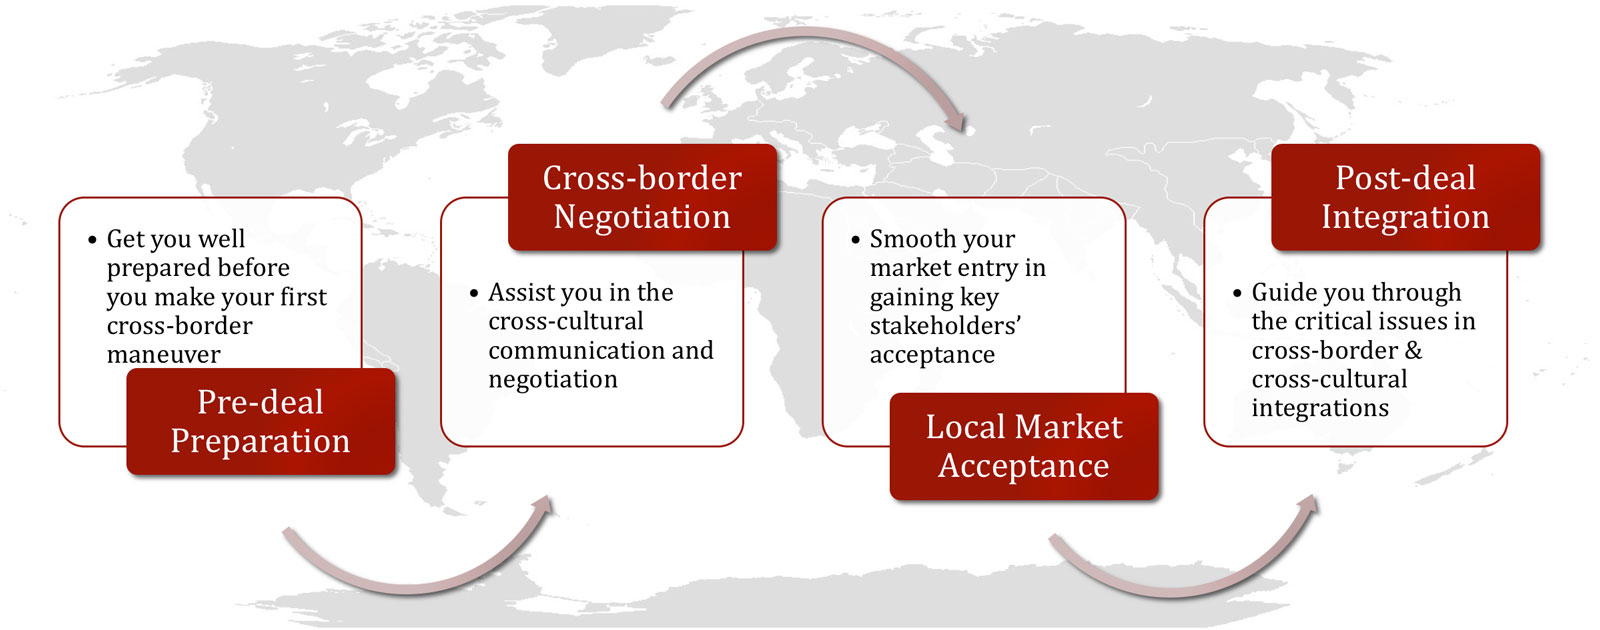 problems faced in cross border mergers and acquisitions 7 The paper is an attempt to understand the problems faced by companies involved in cross border mergers and provide for solutions to the same the first part of the paper deals with the relevant laws surrounding cross border entities merging.